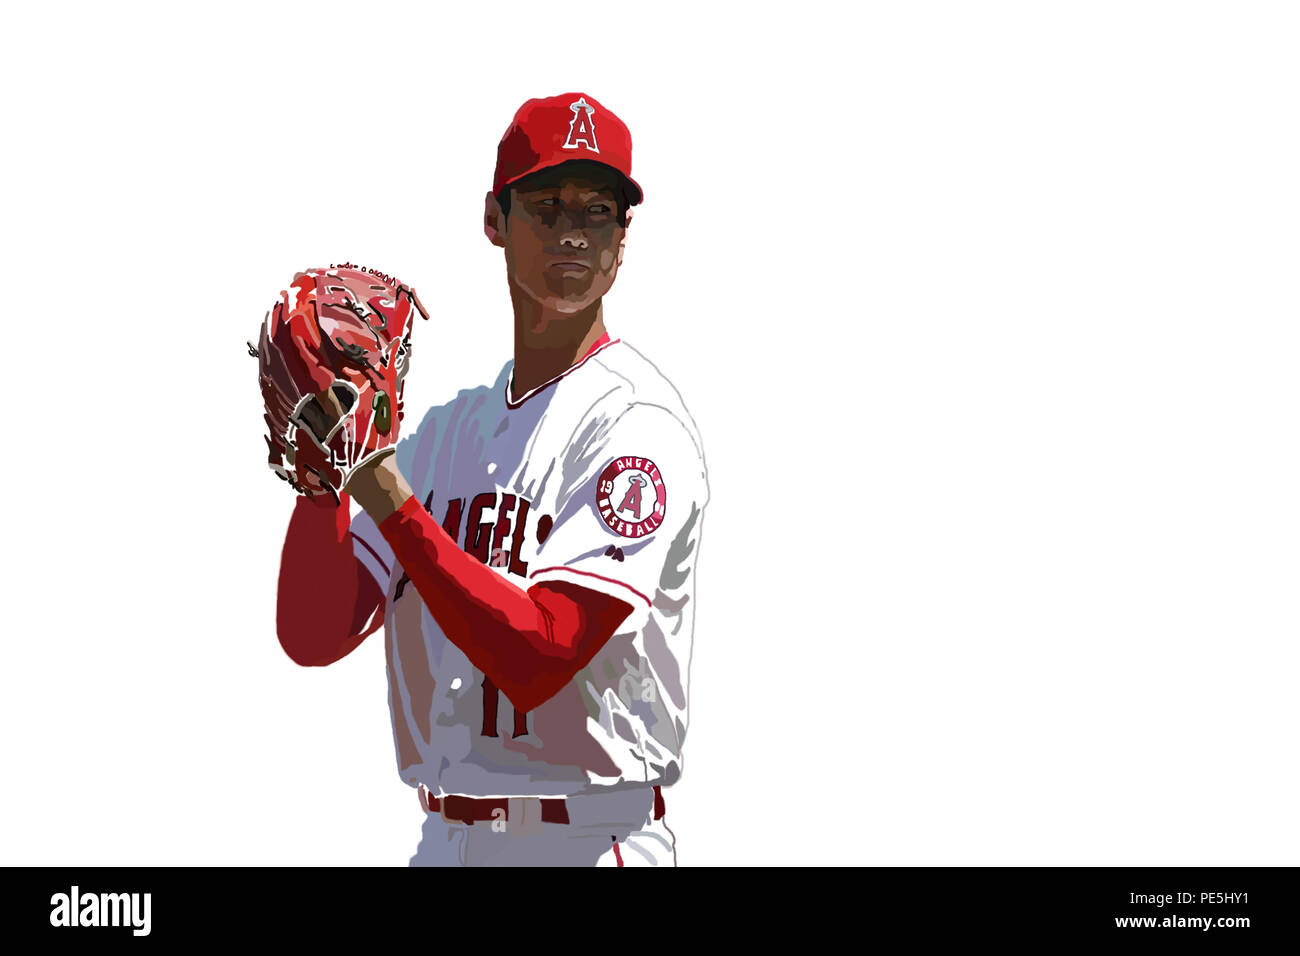 This is a painting that I made by hand on Photoshop of Shohei Ohtani of the Los Angeles Angels of Anaheim. - Stock Image